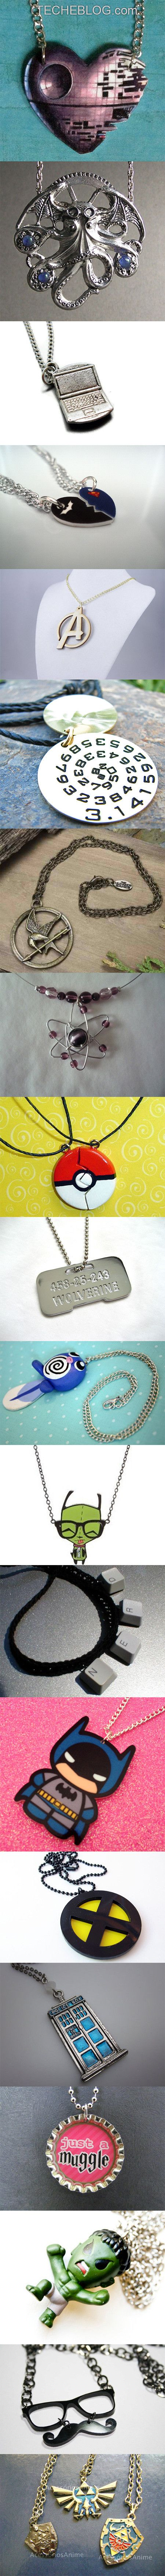 *hyperventilating* oh my god I need all of them...but mostly : The hunger games necklace, The GIR necklace, the pokeball necklace, the TARDIS necklace, and the legend of zelda necklaces.